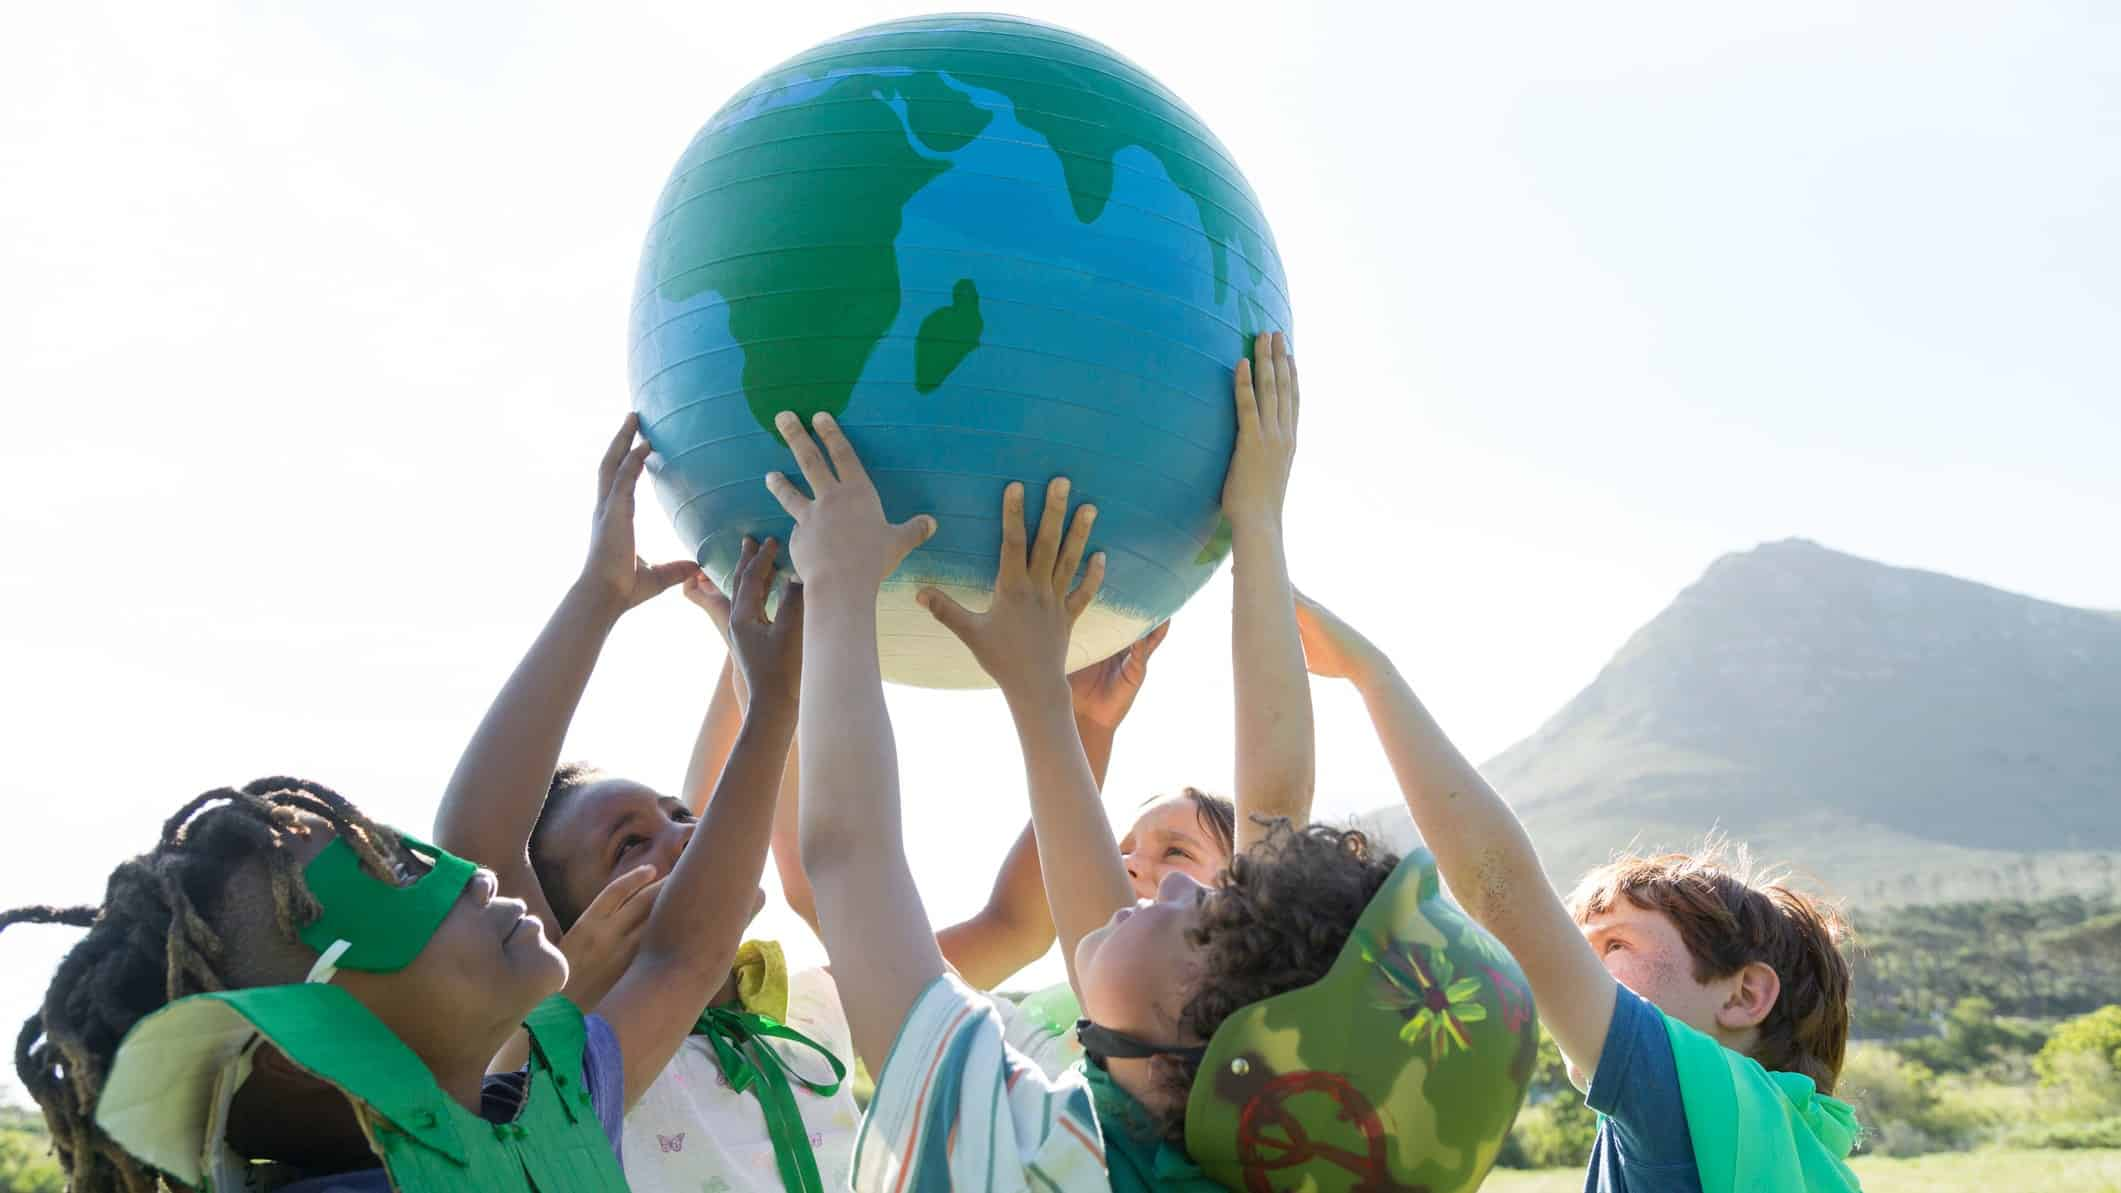 Group of children dressed in green hold up a globe relating to climate change.